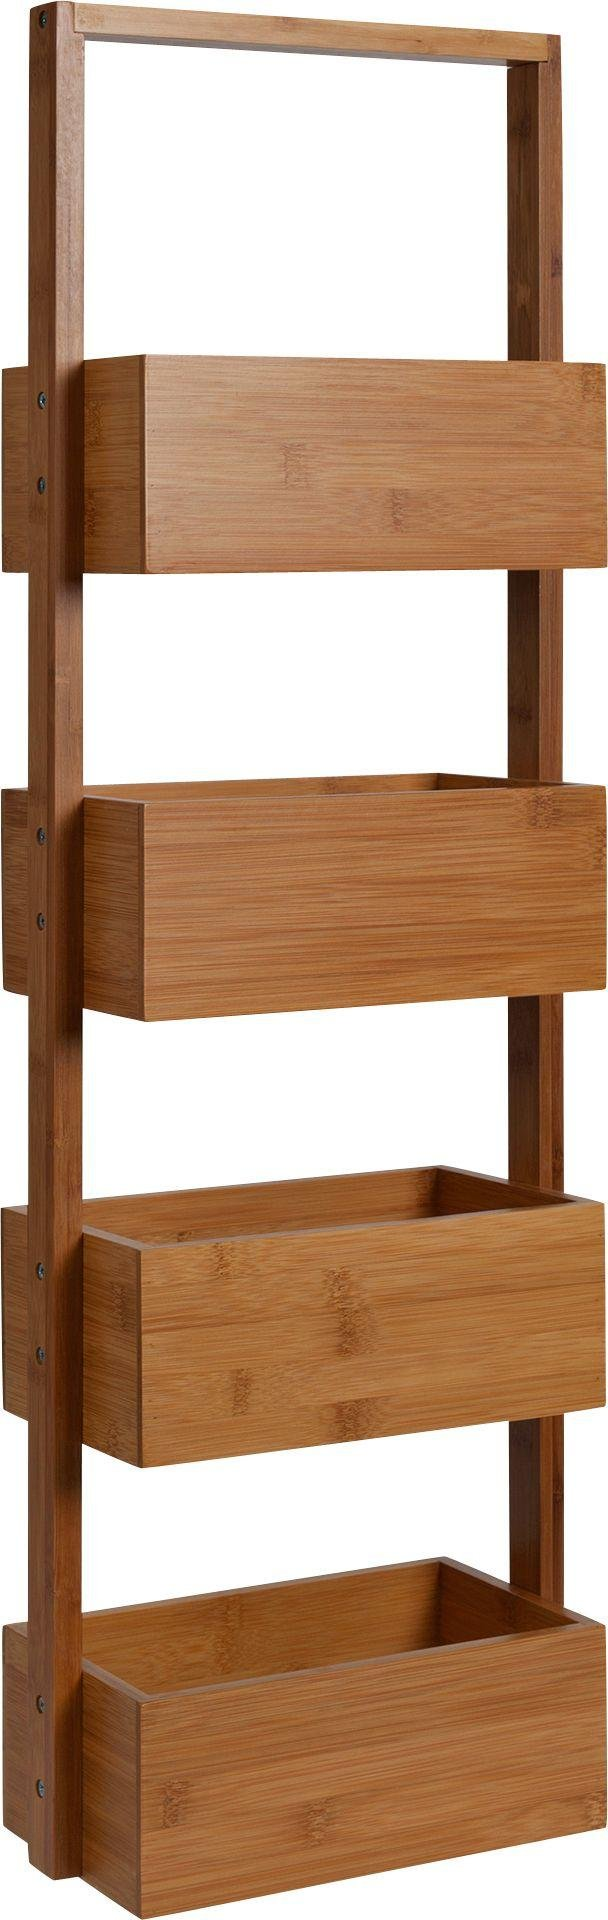 Buy Collection Freestanding Bamboo Bathroom Storage Caddy ...